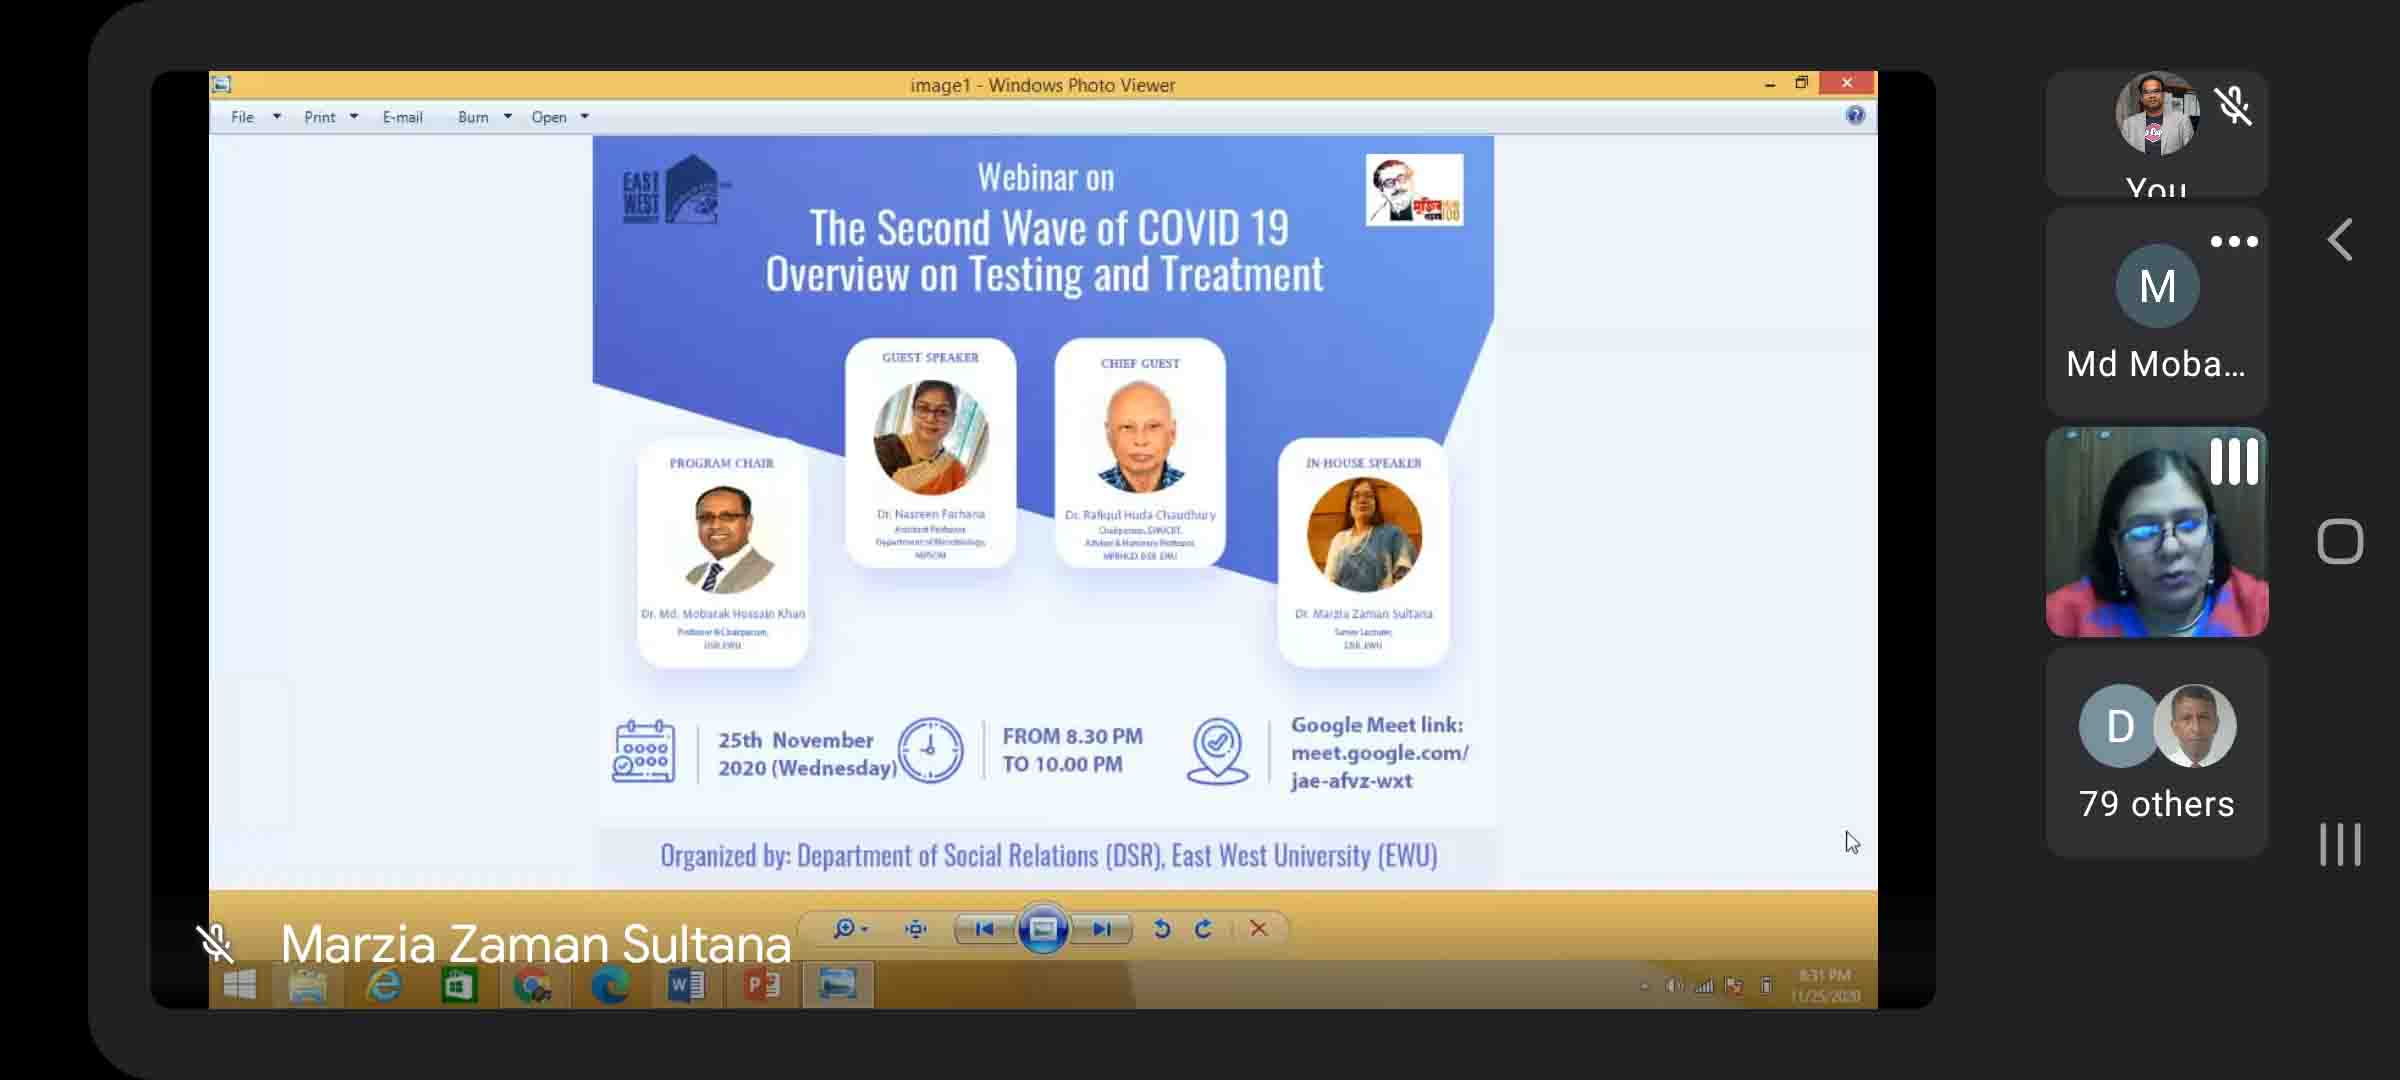 "Department of Social Relations, EWU organized a webinar on, ""The Second Wave of COVID 19: Overview o..."